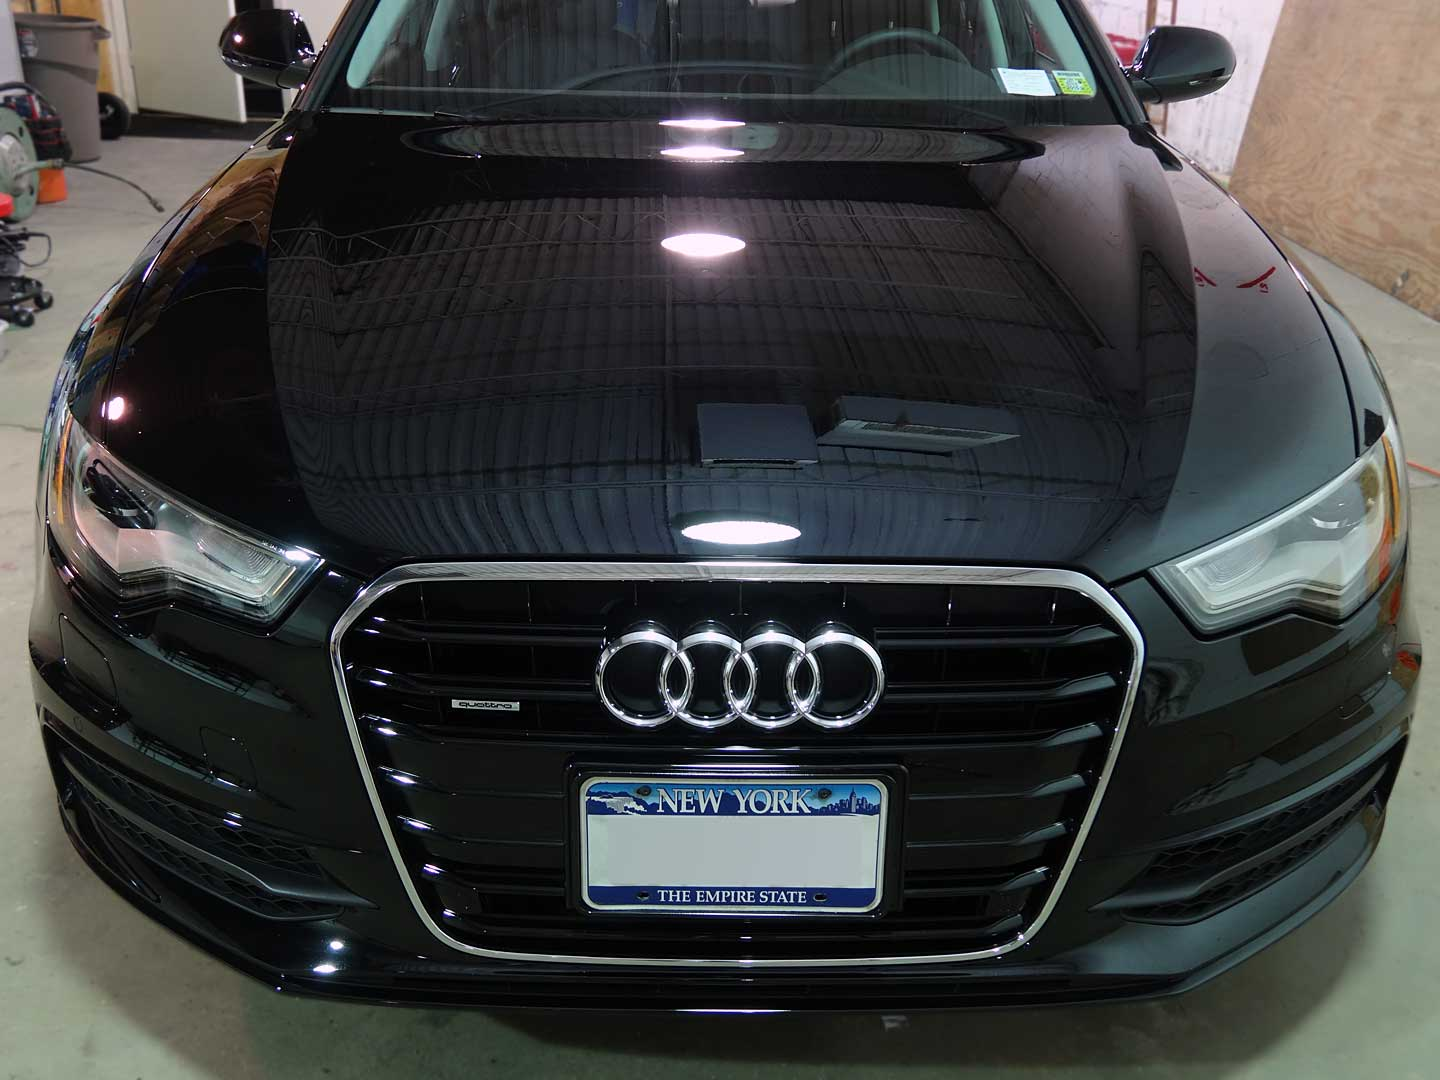 xcode fort southampton trends image miami incredible dealership of in pembroke island dealers serving audi area ny inspiration long fl pines and inspiring new